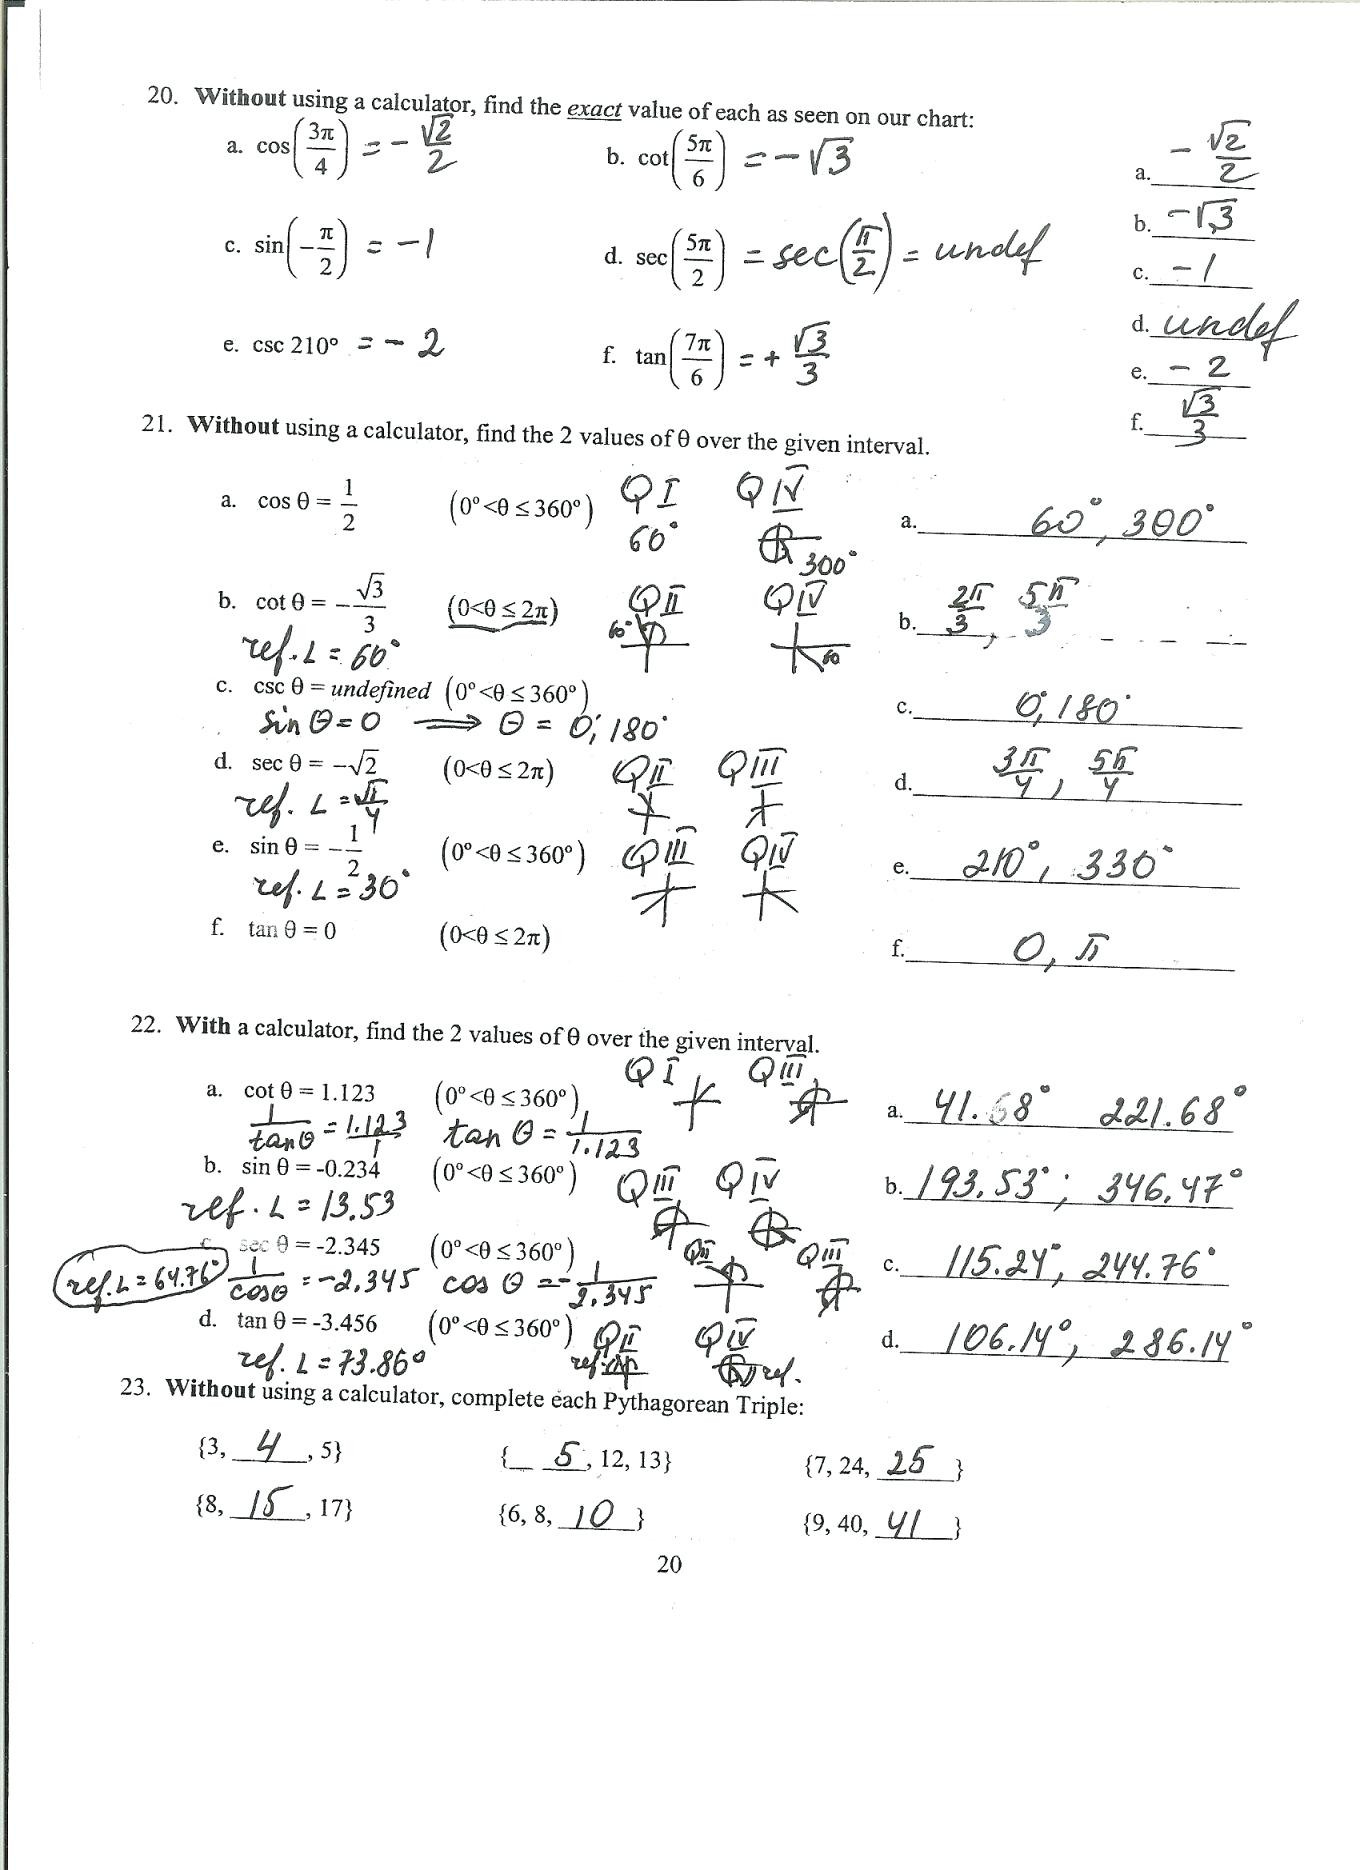 Worksheet Piecewise Functions Algebra 2 Piecewise Functions Worksheet Answers Worksheet List